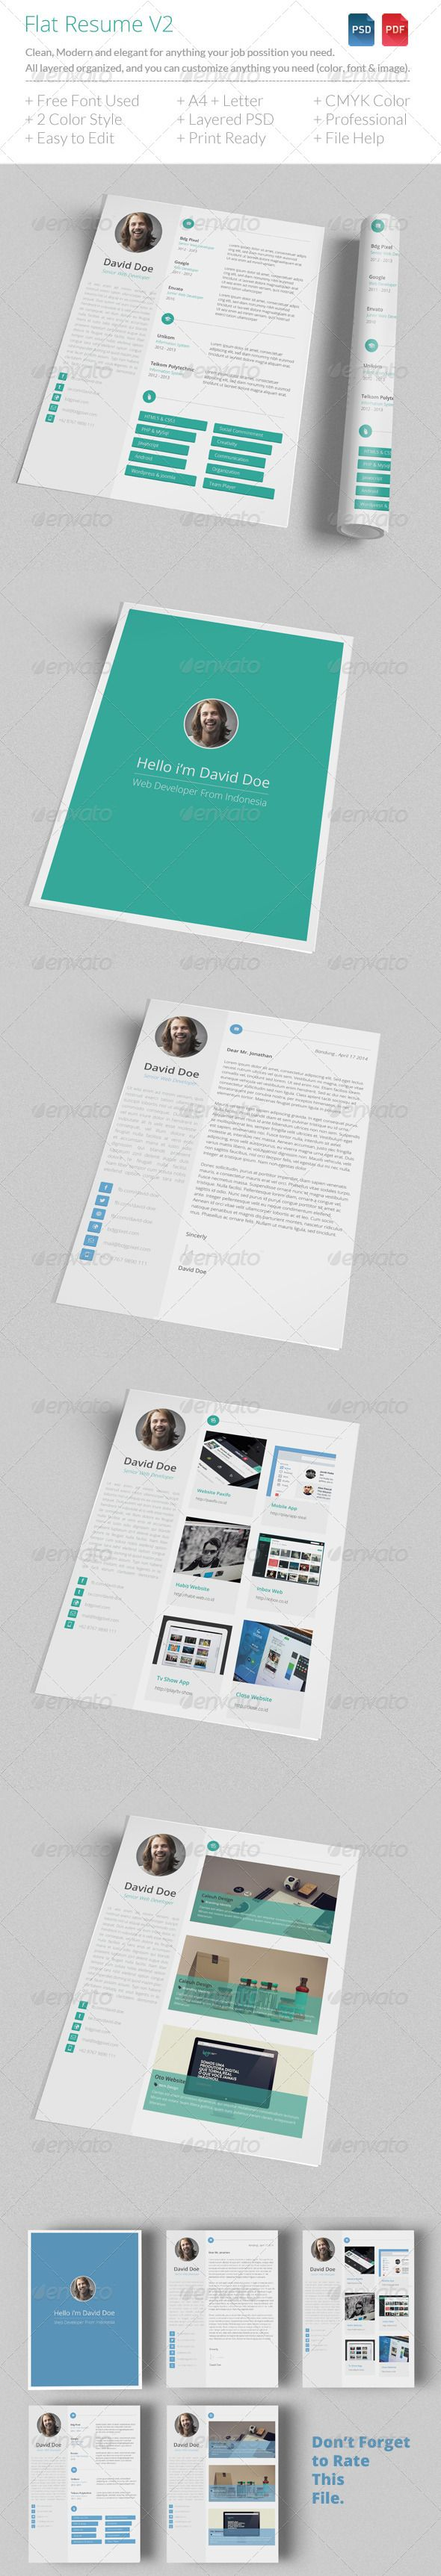 Download at httpgraphicrivernetitemflat resume 29 best Bewerbung images